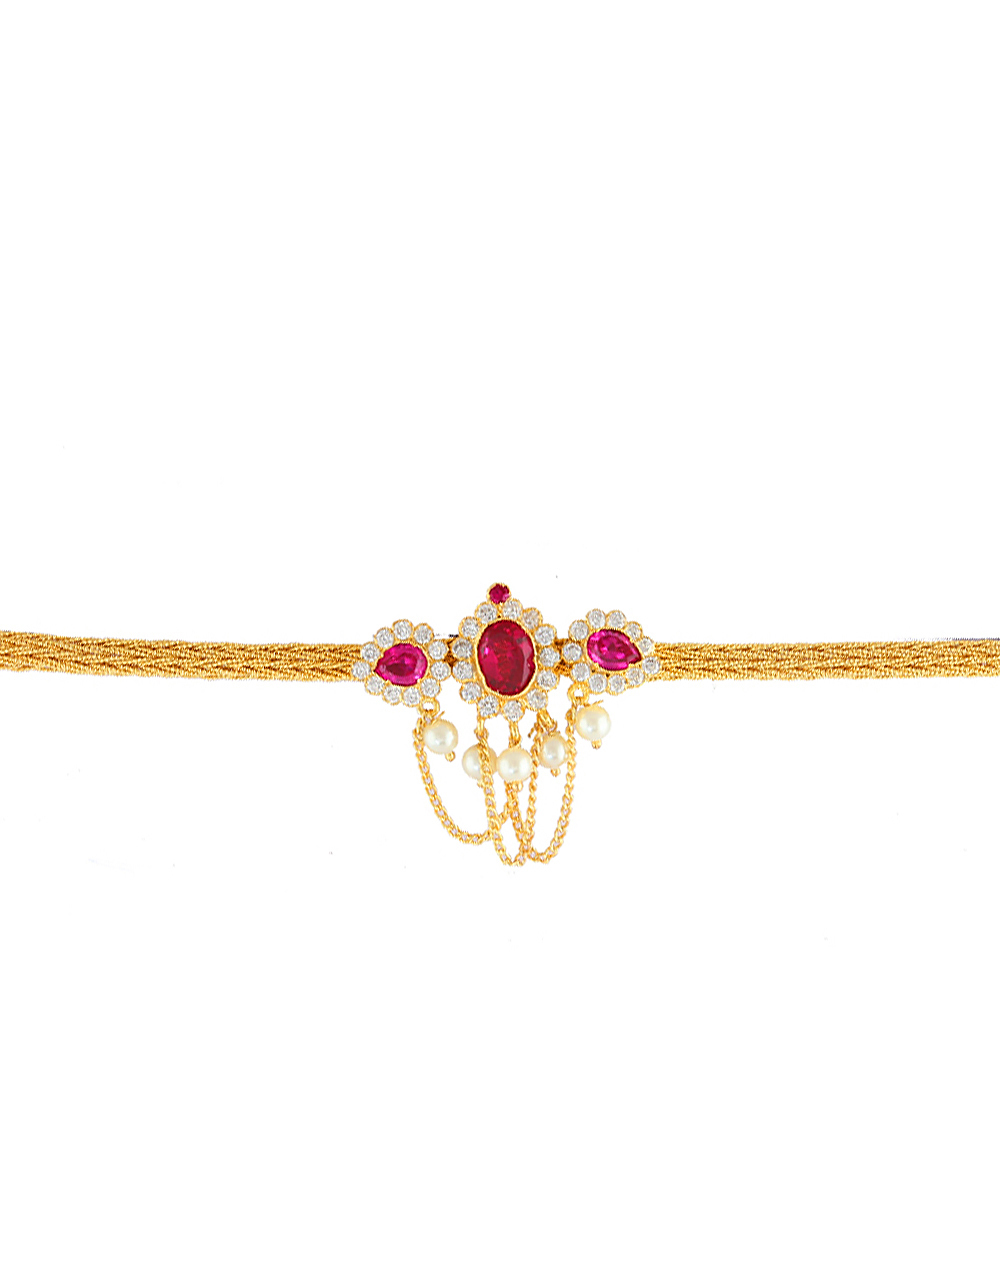 Beautiful Bajuband Studded with Sparkling Stones for Women